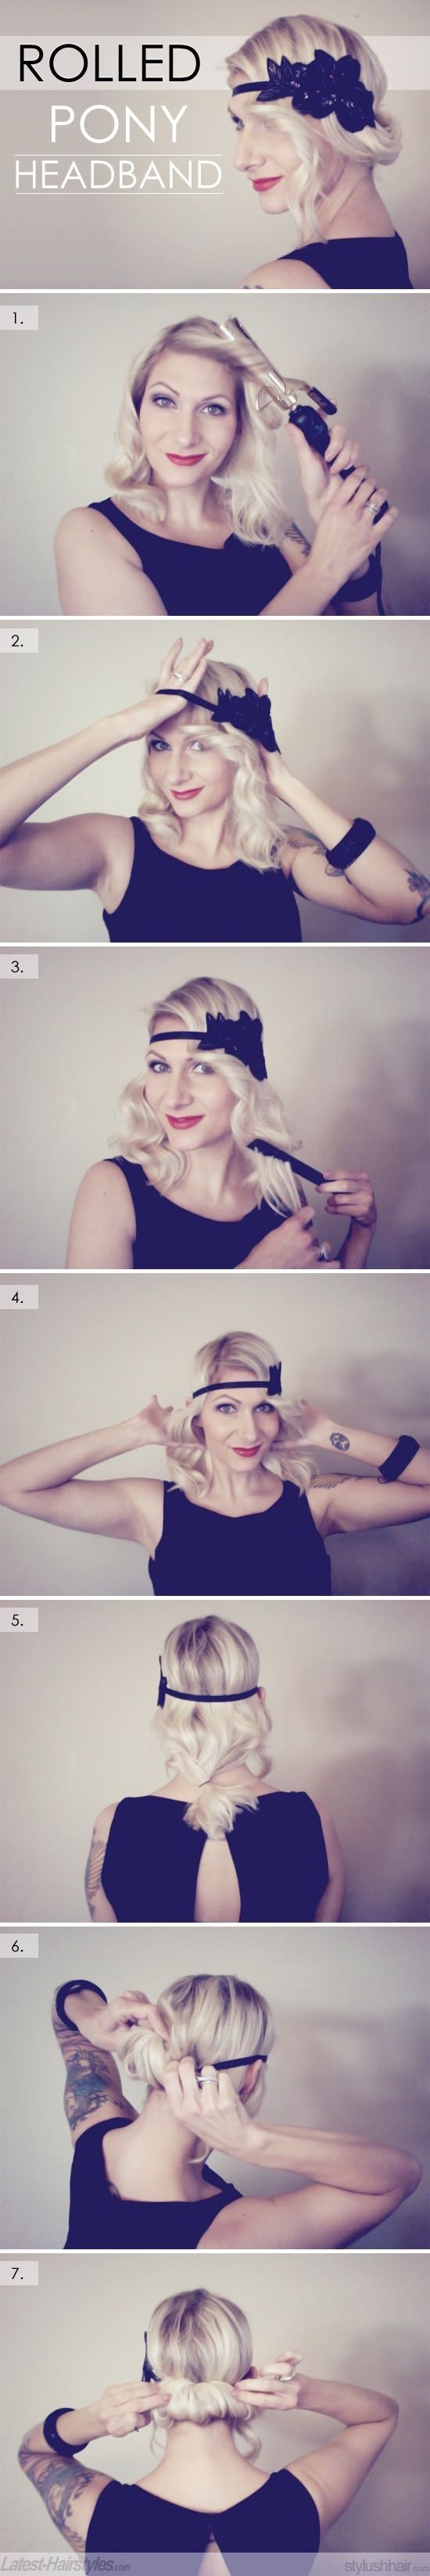 DIY Rolled Ponytail Headband - Flapper style ...                                                                                                                                                                                 More